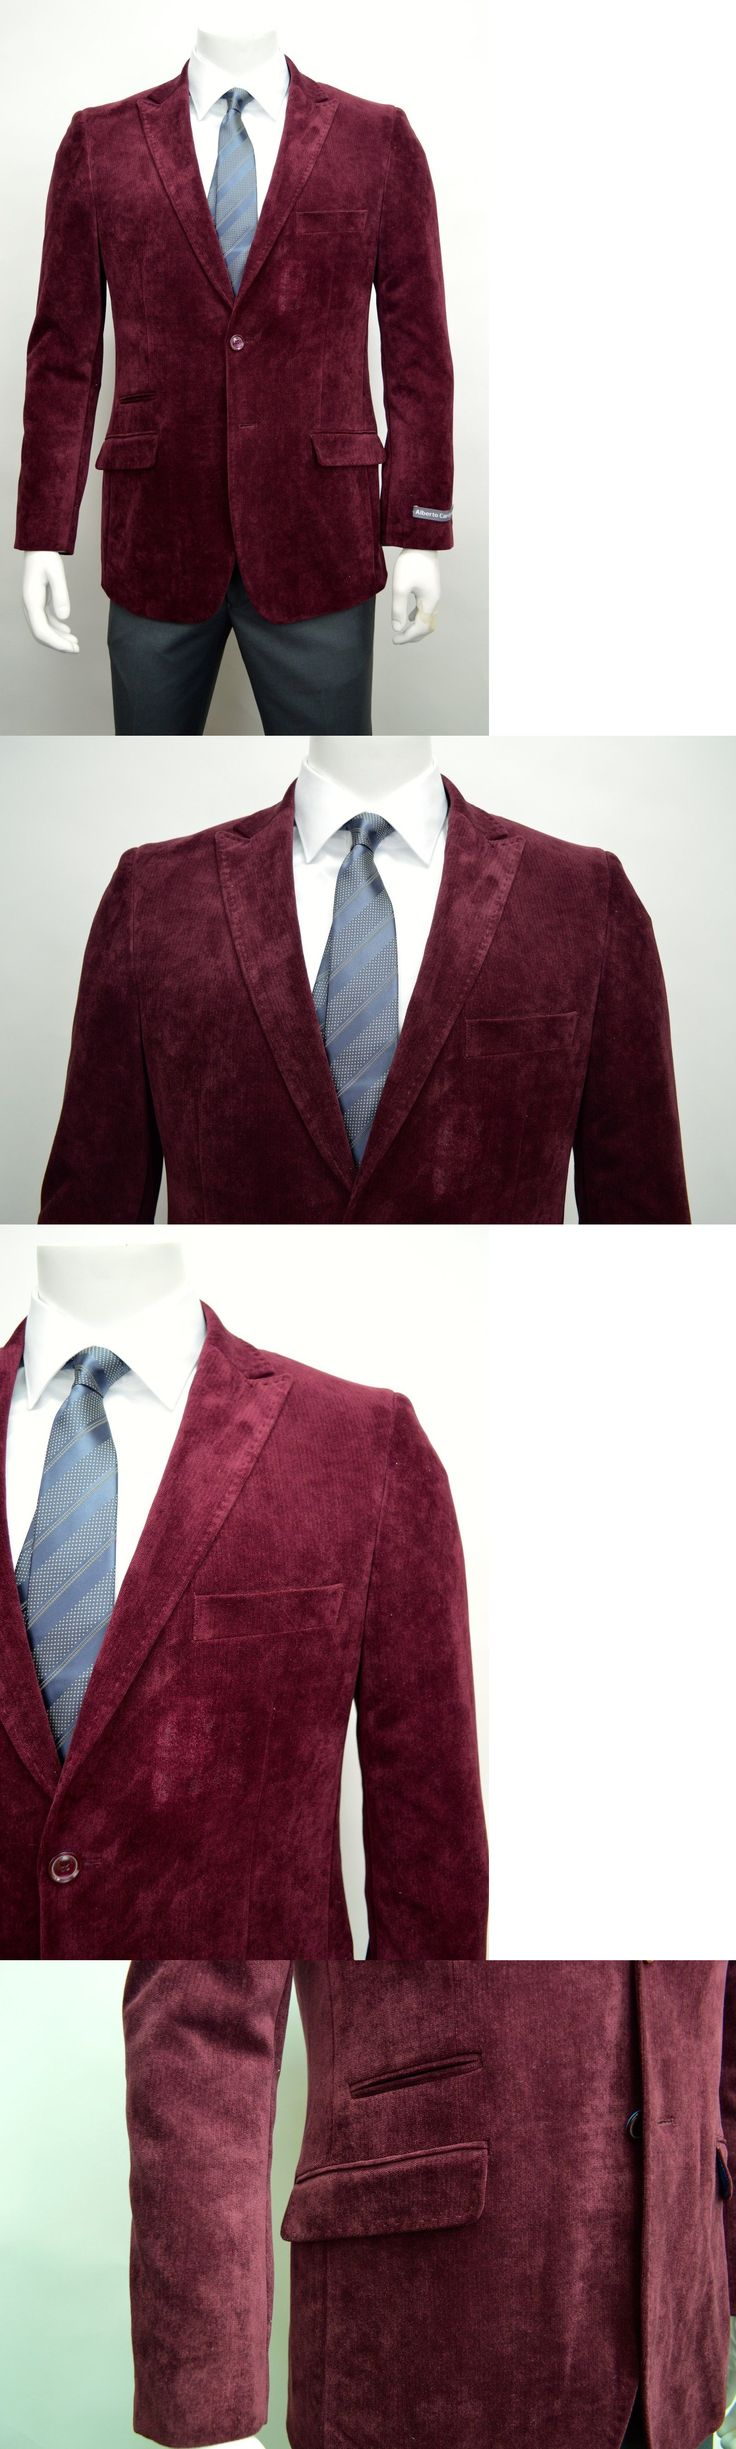 Tuxedo and Formal Jackets 105511: Men S Burgundy 2 Button Velvet Cotton Blazer W Ticket Pocket Size 48R New -> BUY IT NOW ONLY: $79.5 on eBay!